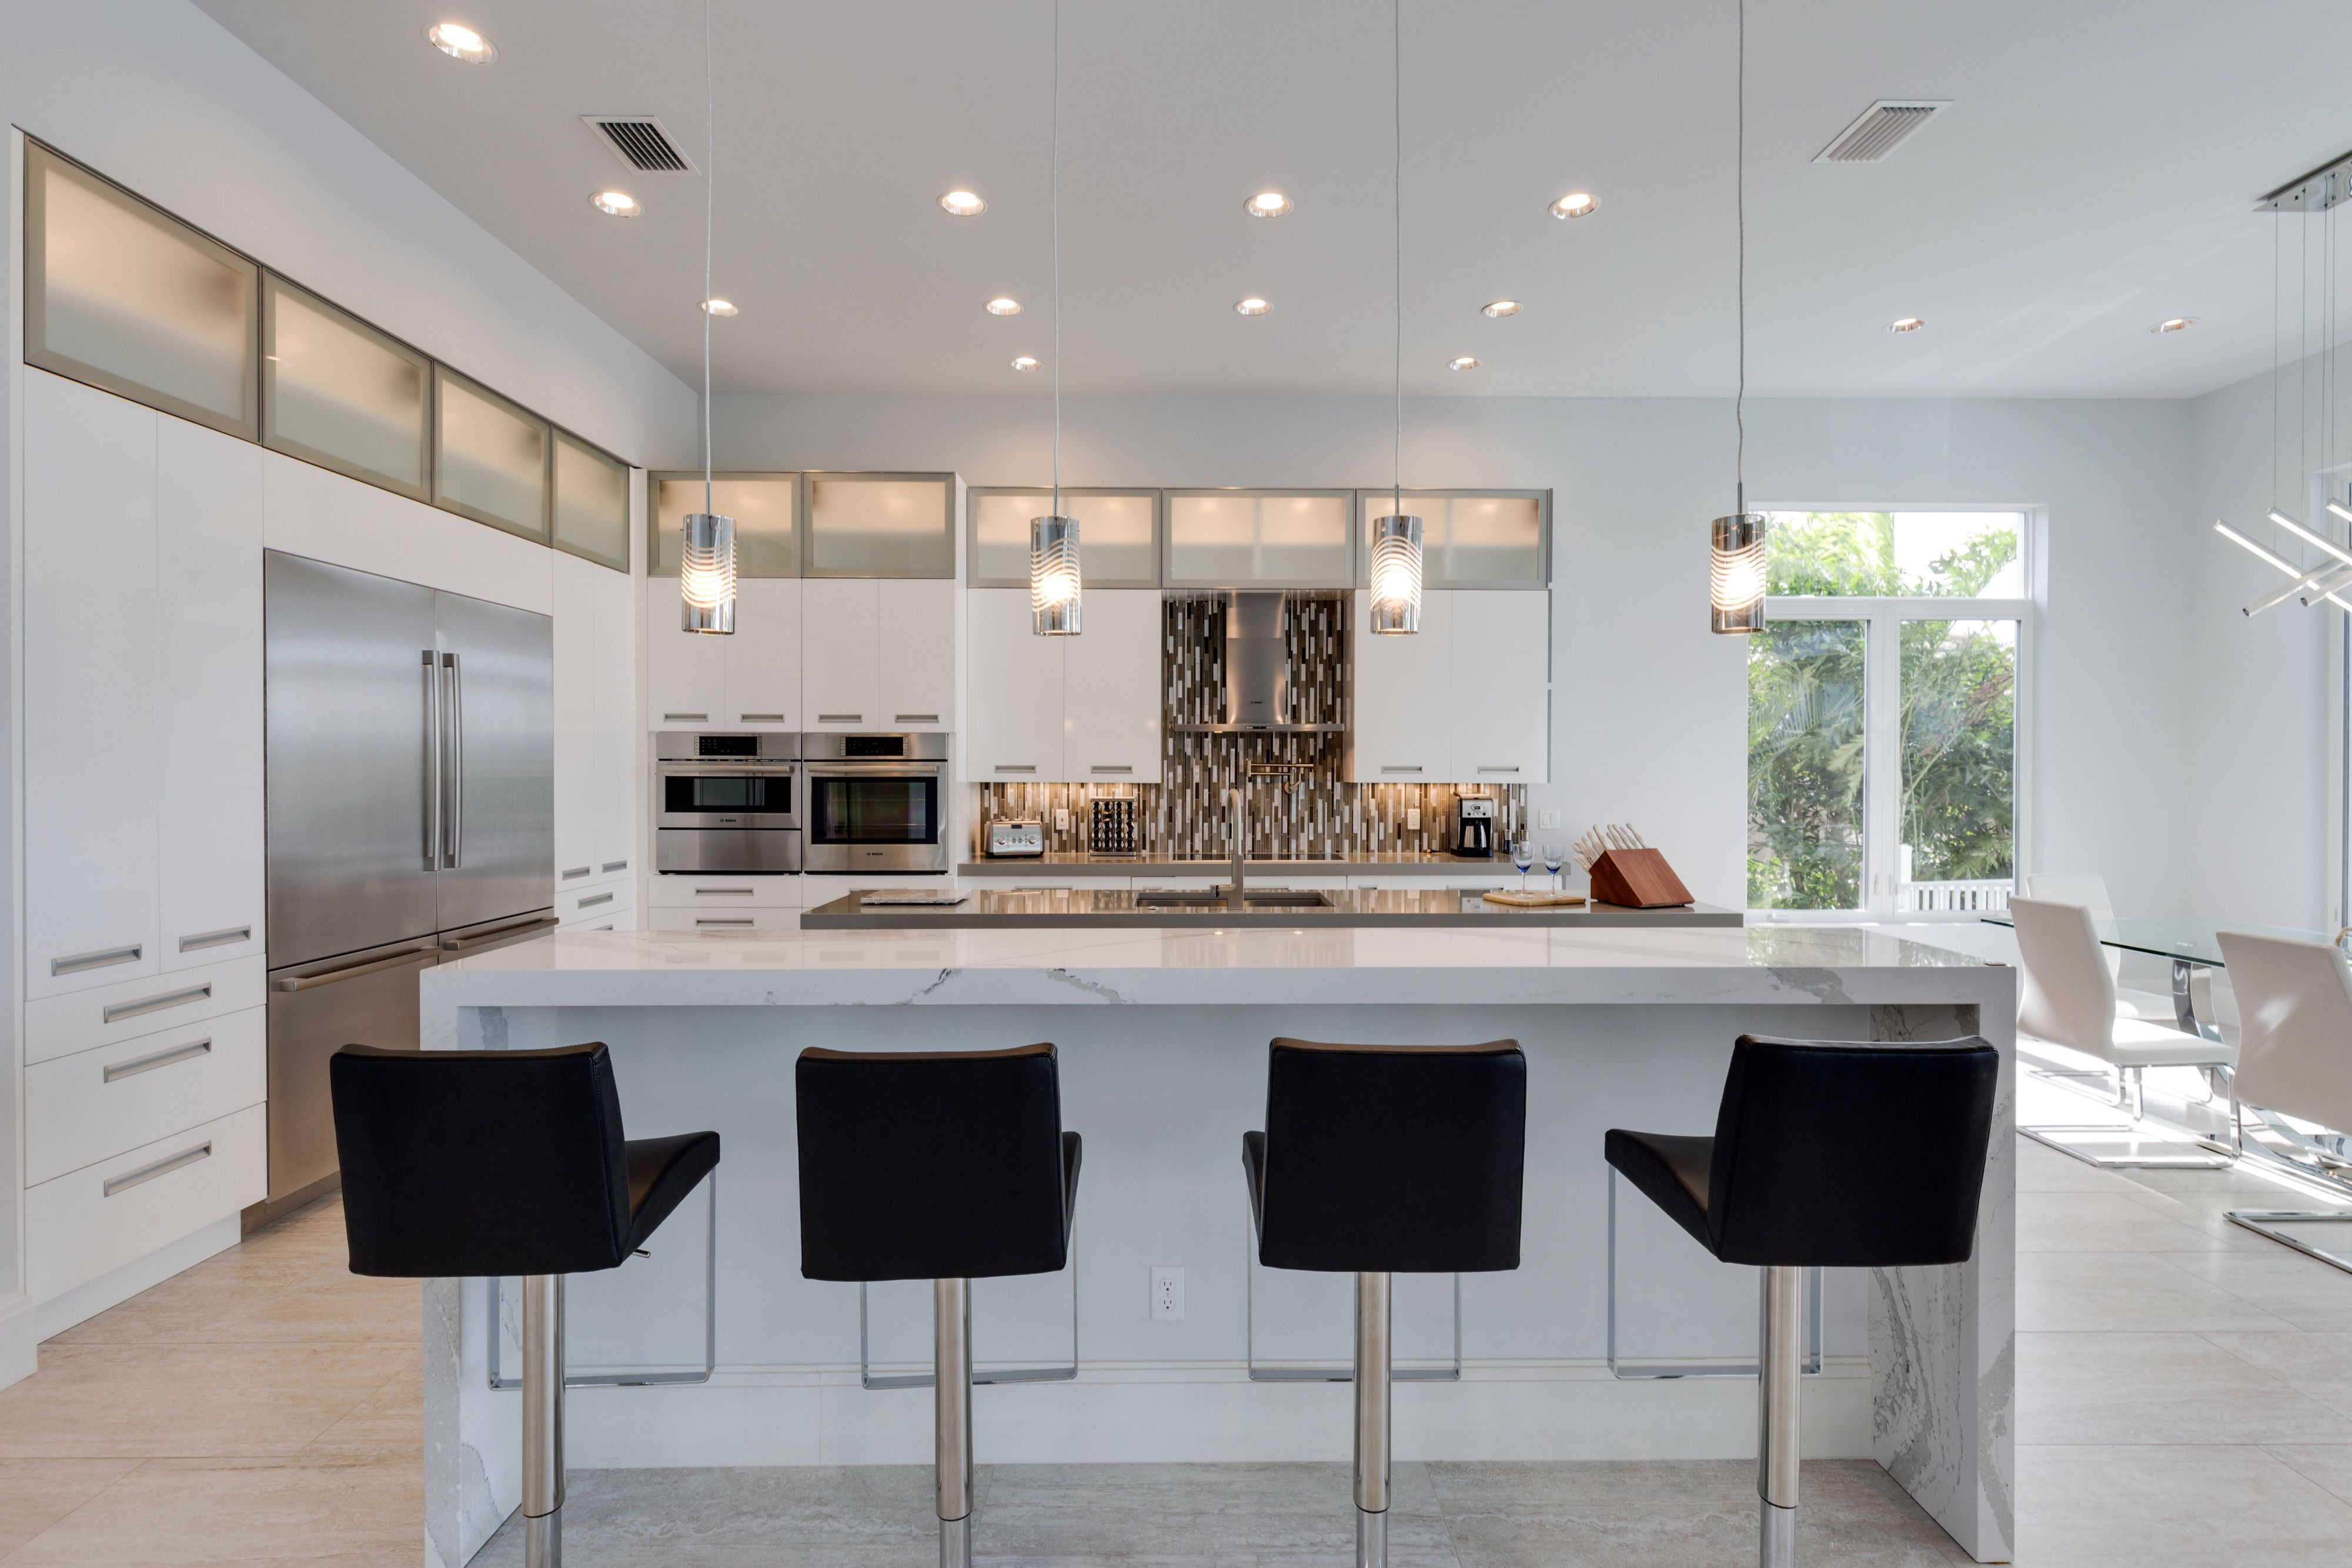 The Stylish Kitchen For The Luxus Floor Plan Located In Cape Coral Florida Stylish Kitchen Contemporary Kitchen New Home Construction